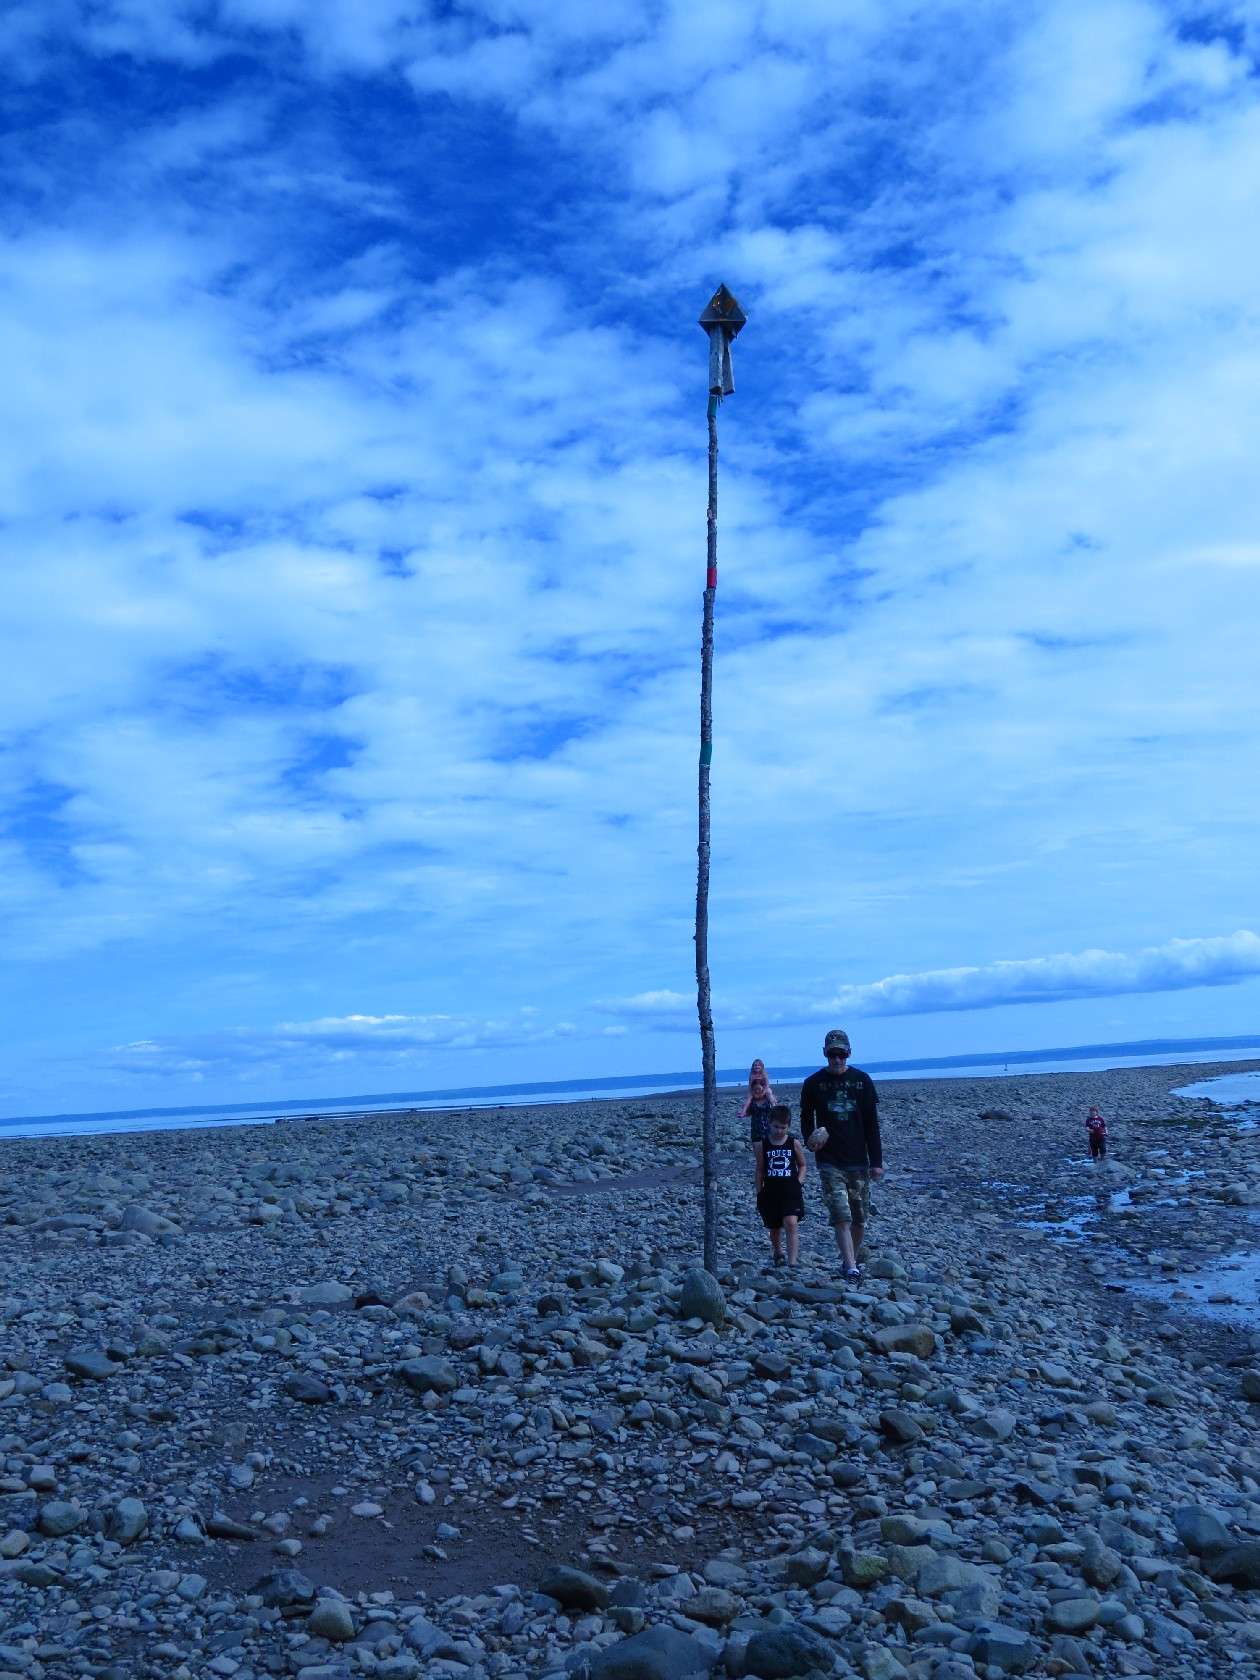 Posing by the tidal pole at low tide, Alma